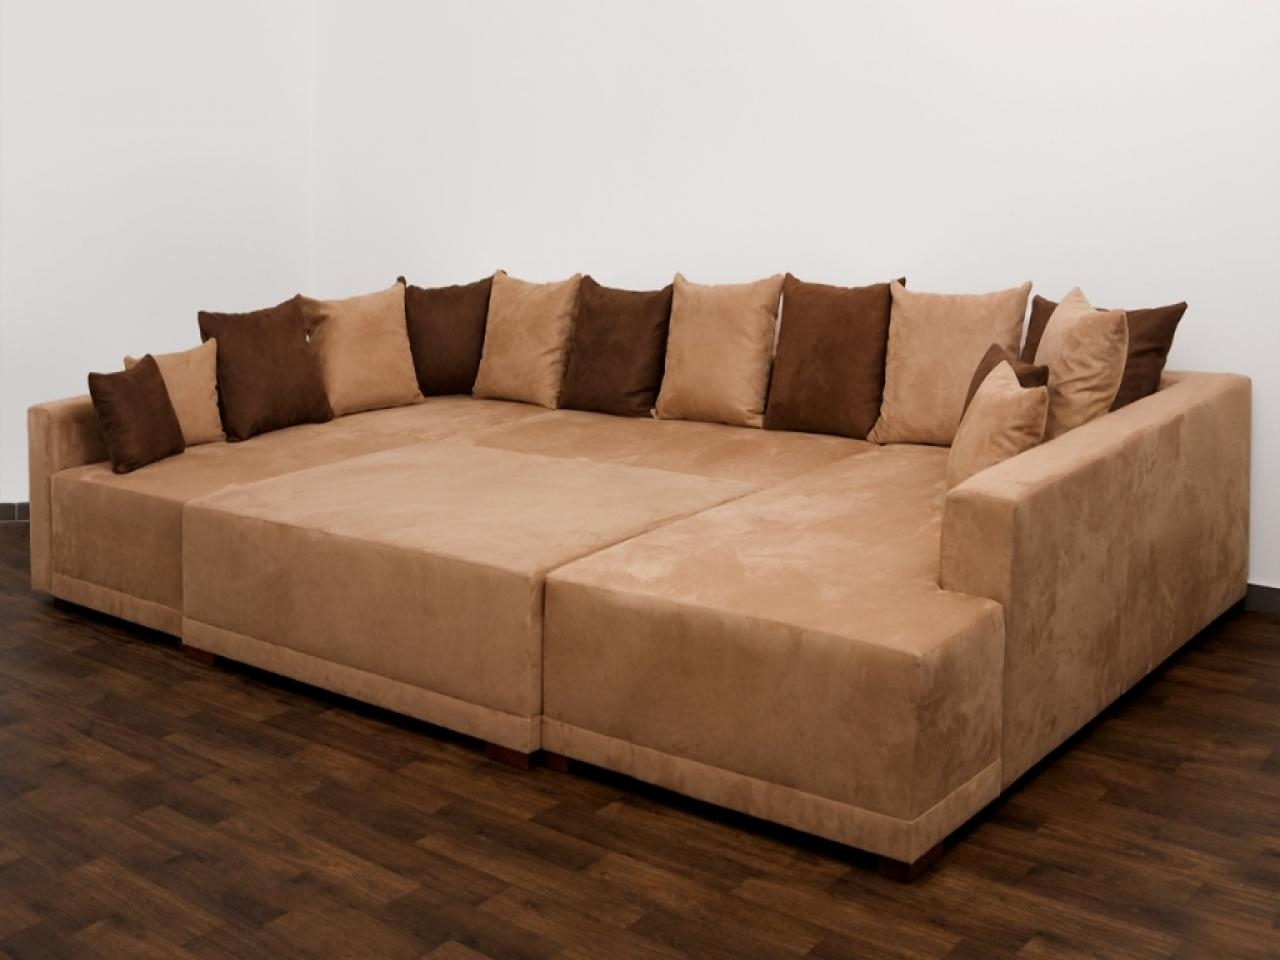 Extra Large Sectional Sofa | Demand Sofas Set In Large Leather Sectional (Image 2 of 20)